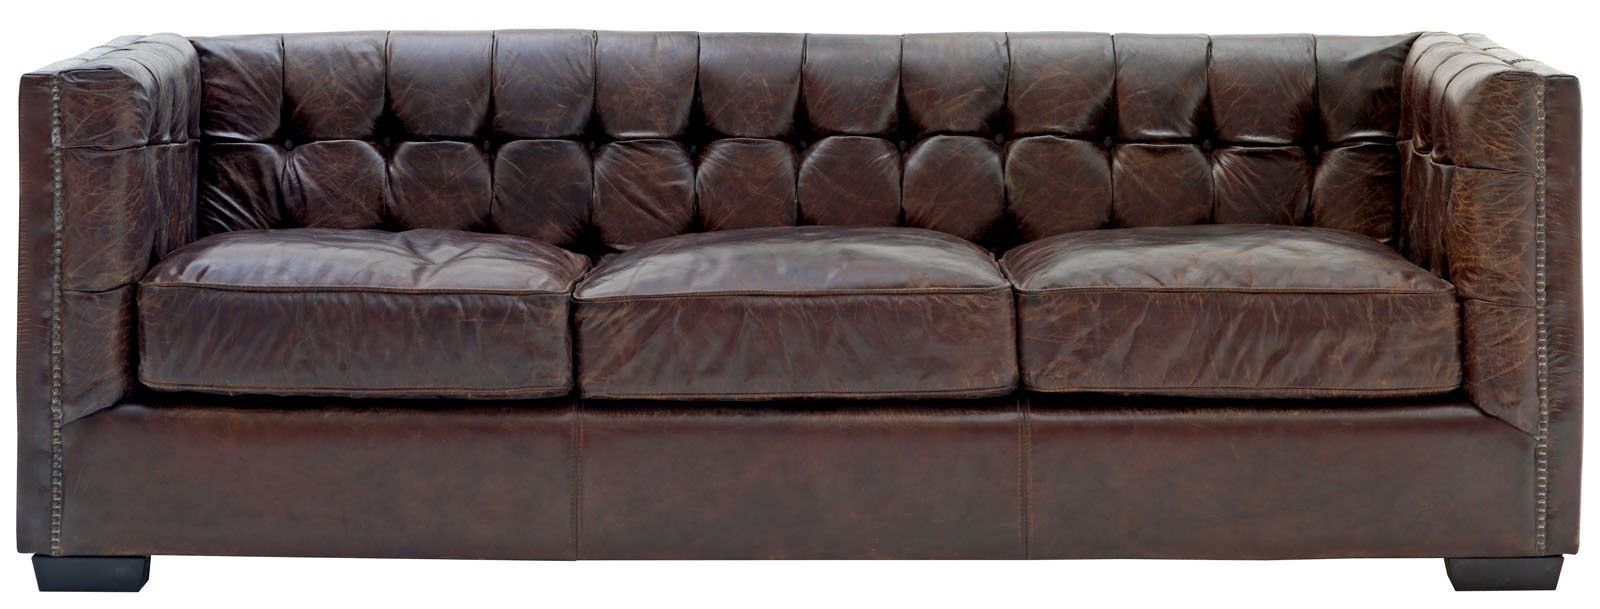 Armstrong Sofa Leather | Furniture Pieces | Pinterest | Sofa Within Andrew Leather Sofa Chairs (Image 12 of 20)